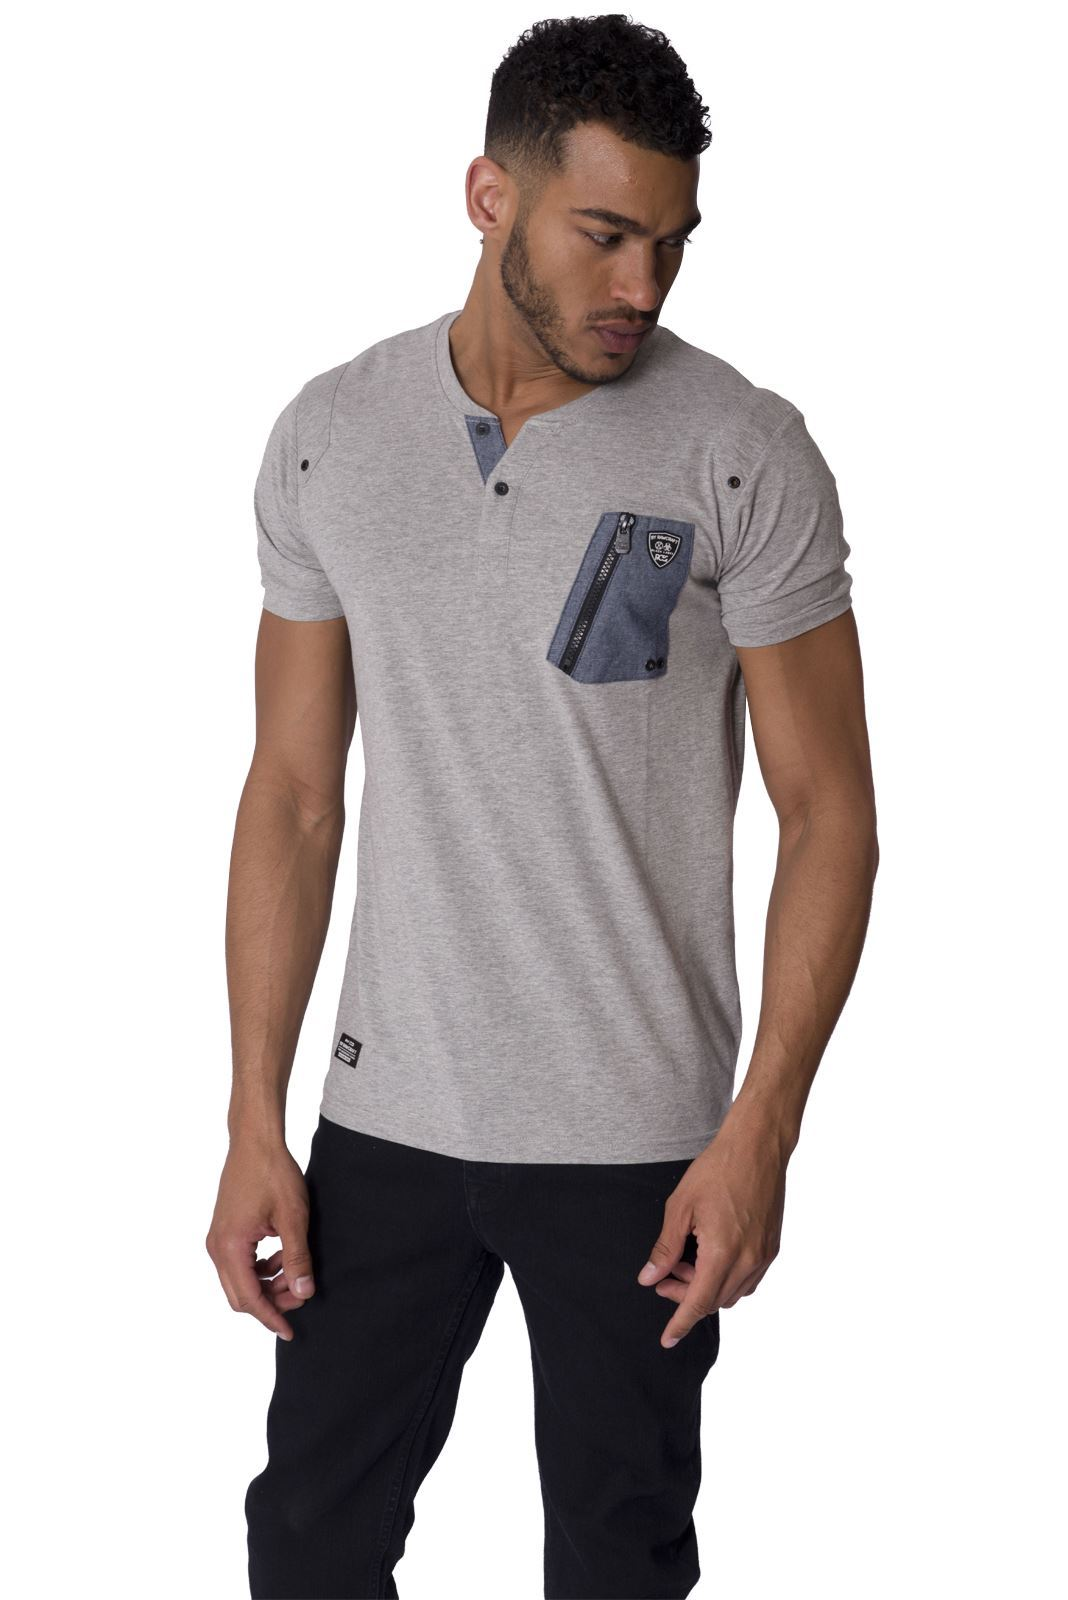 Shop for mens pocket tee shirt online at Target. Free shipping on purchases over $35 and save 5% every day with your Target REDcard. Target / Men / mens pocket tee shirt () Men's Standard Fit Short Sleeve Pocket Crew Neck T-Shirt - Goodfellow & Co™.